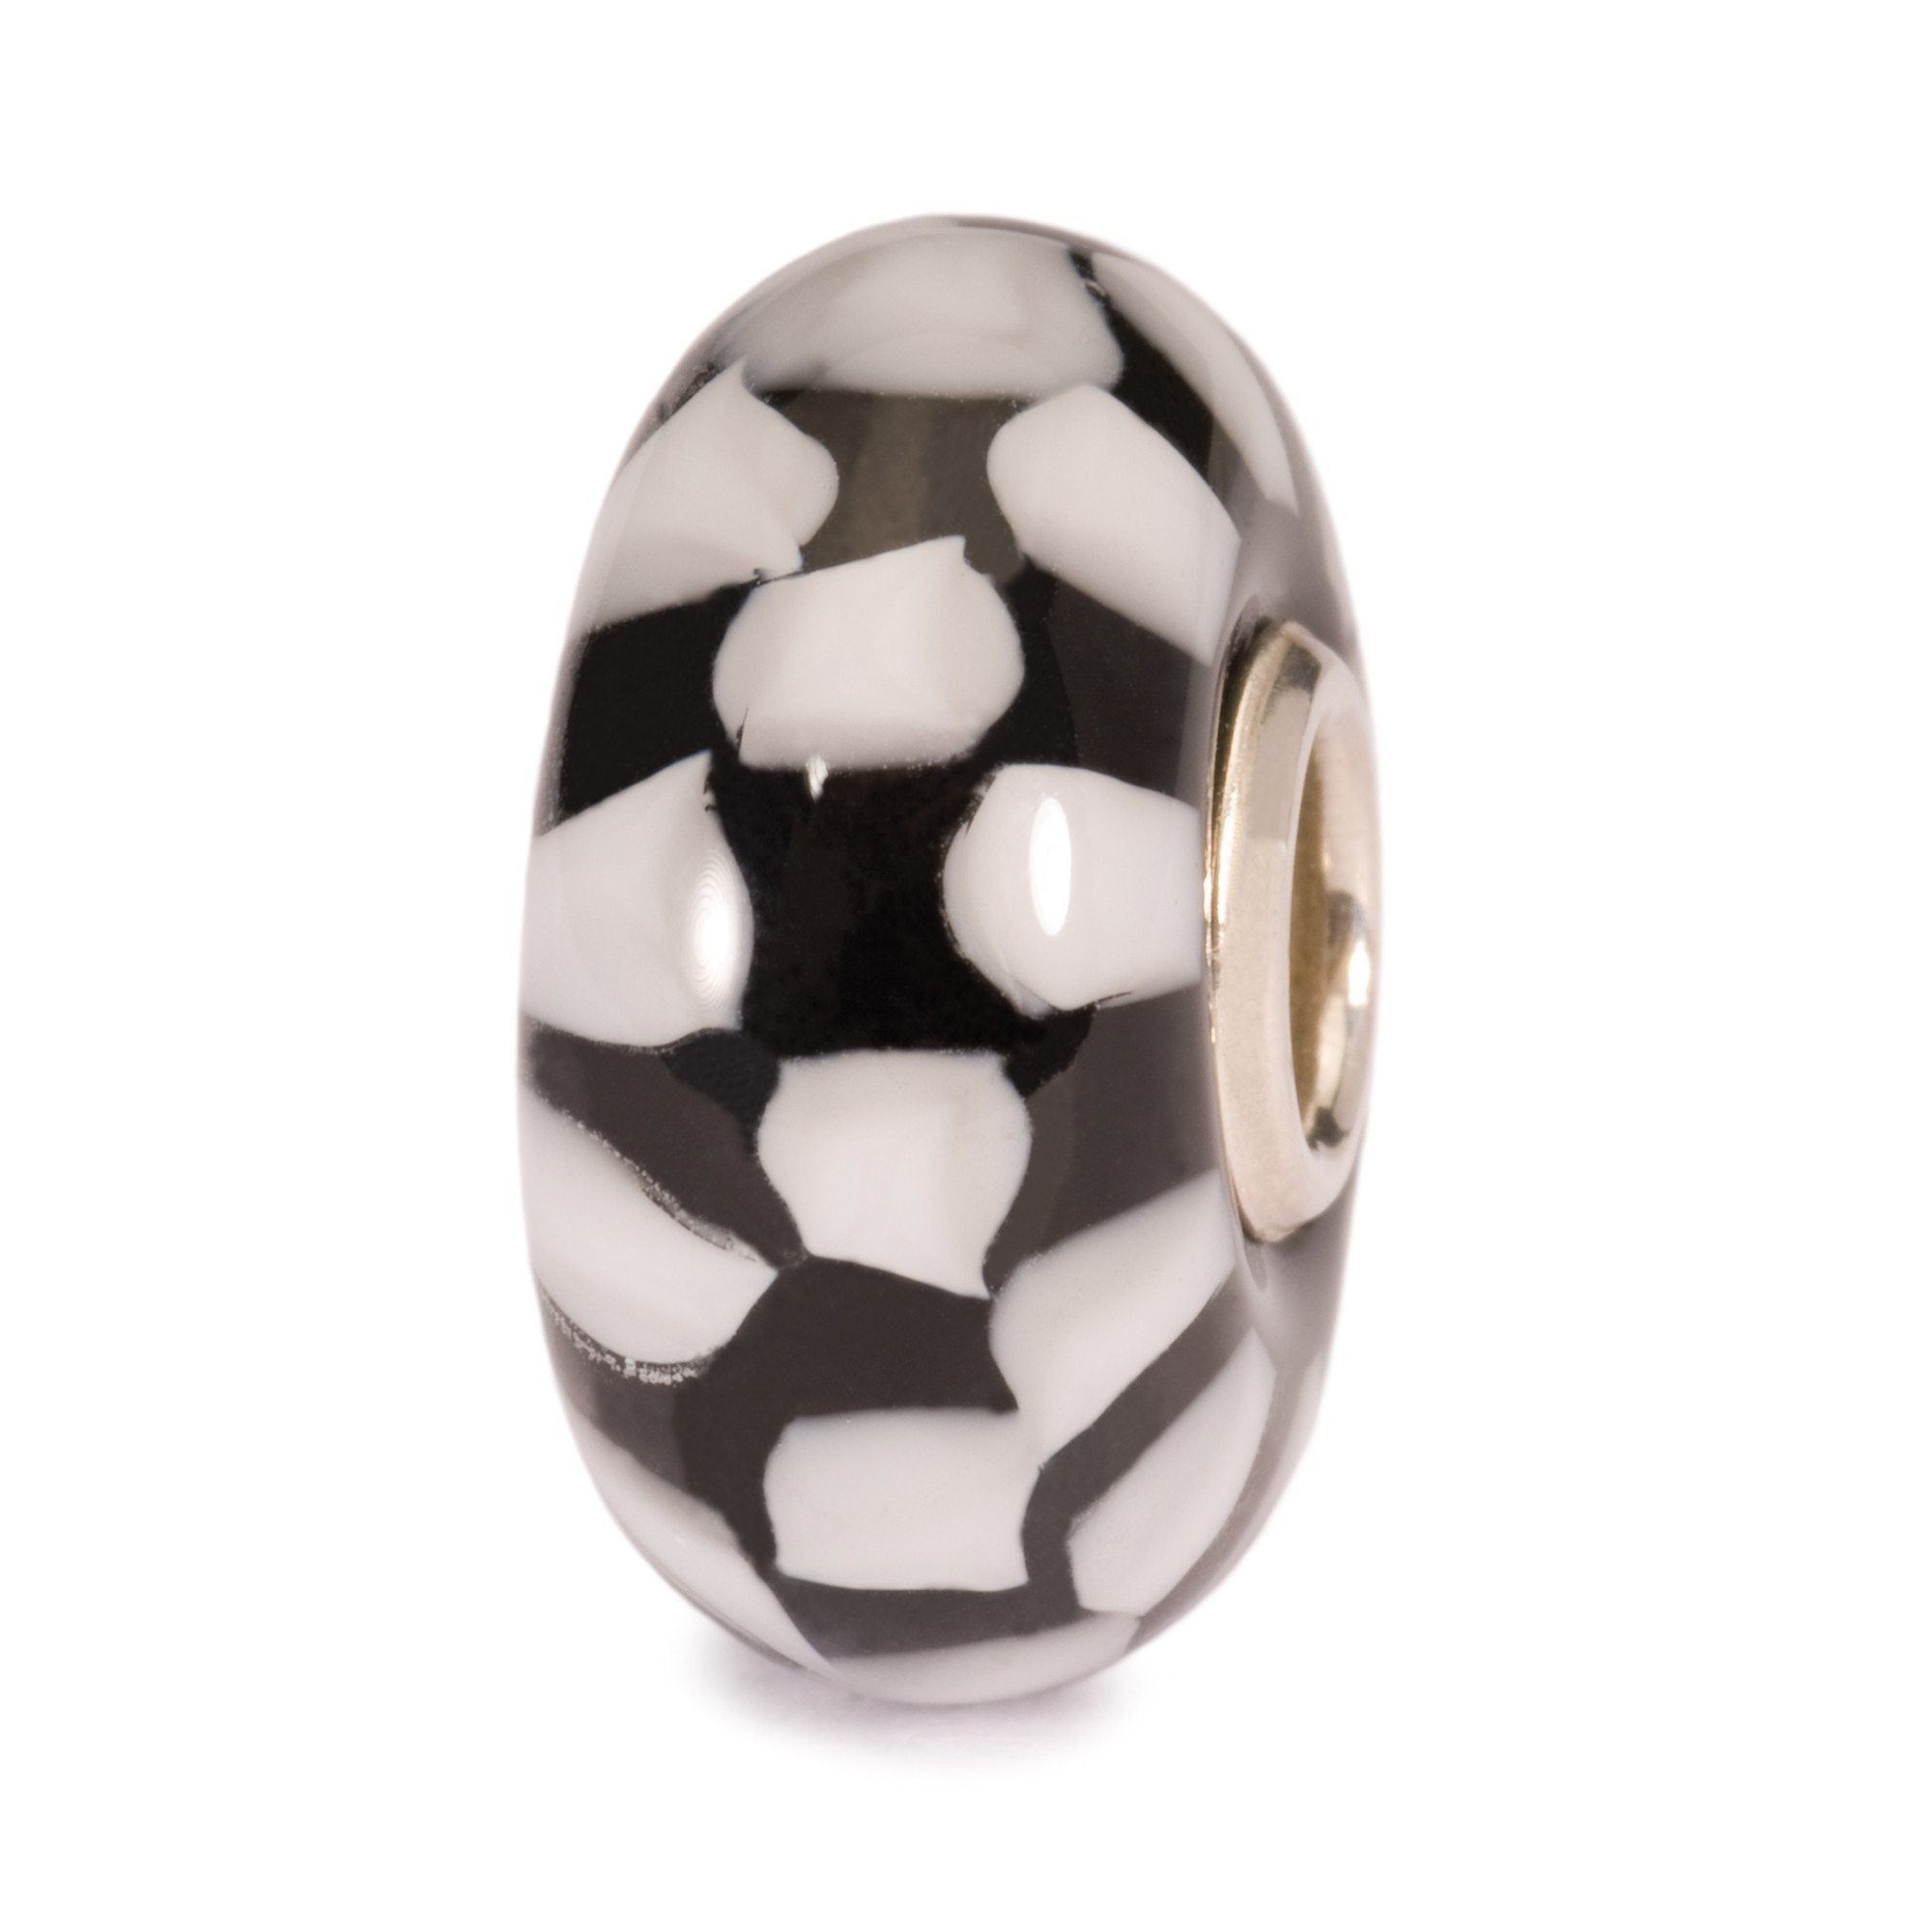 Trollbeads Italian glass bead called Chess, in a black and white checkerboard style